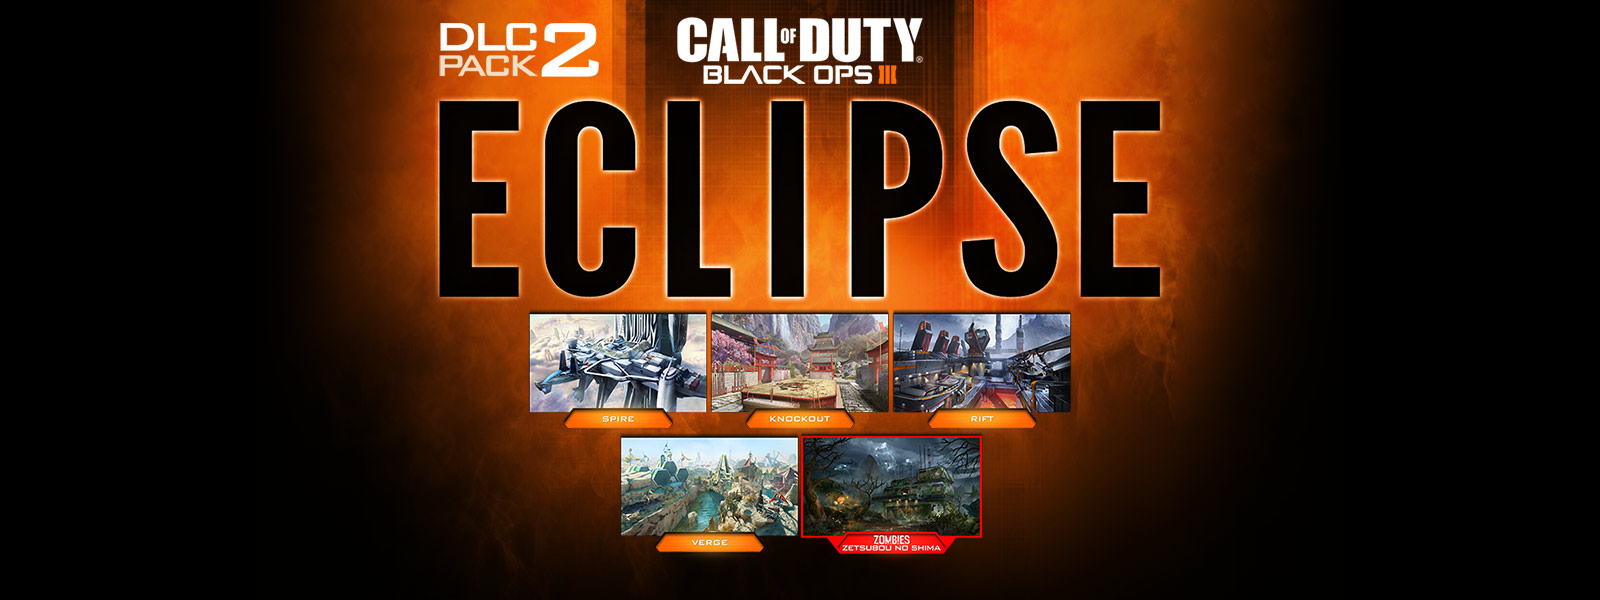 Collage de captures d'écran de cartes du DLC Eclipse